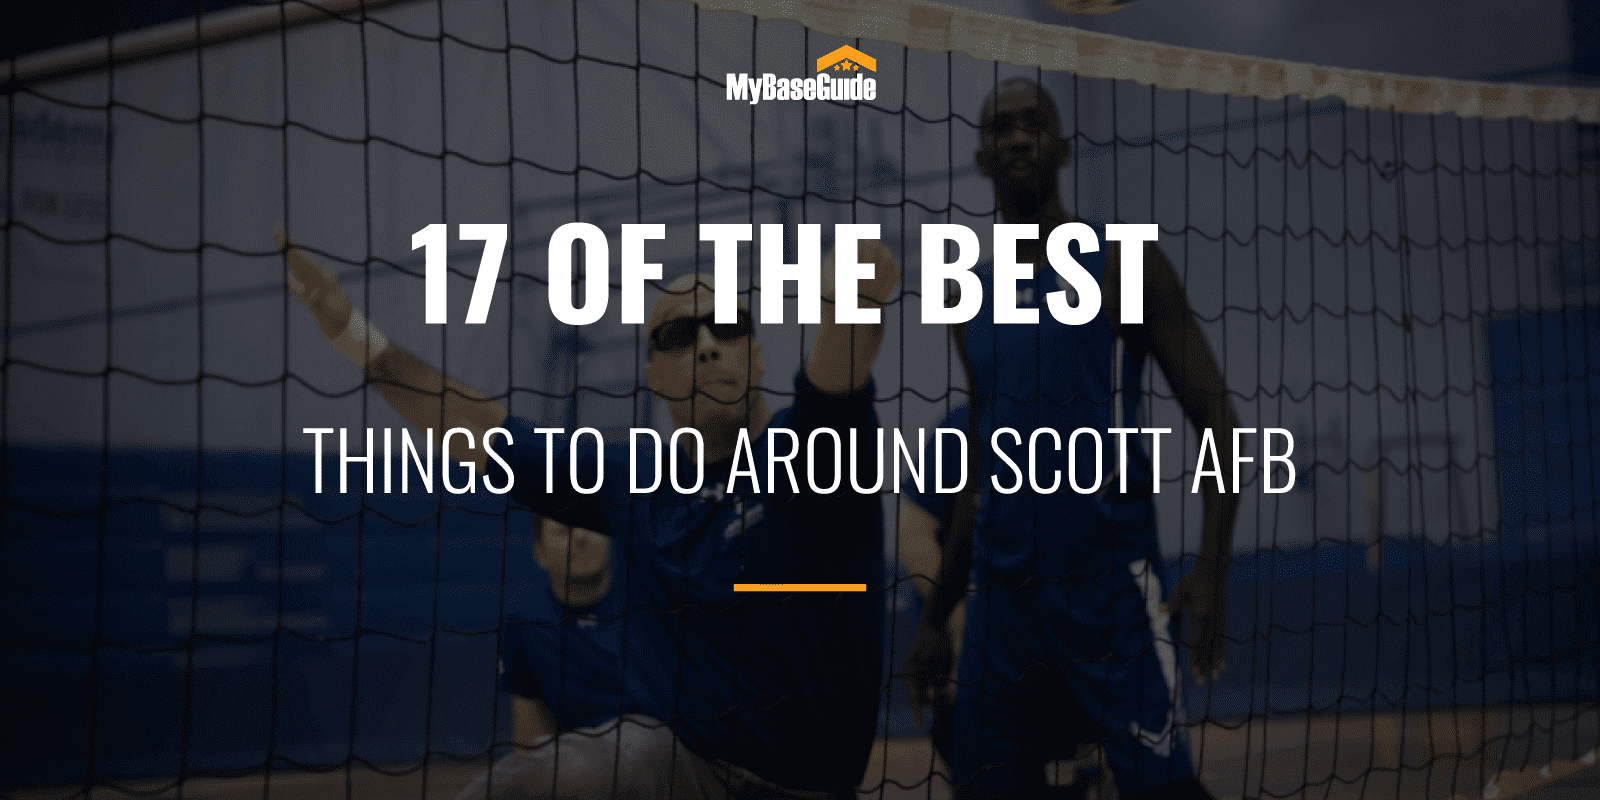 Best Things to Do Near Scott AFB